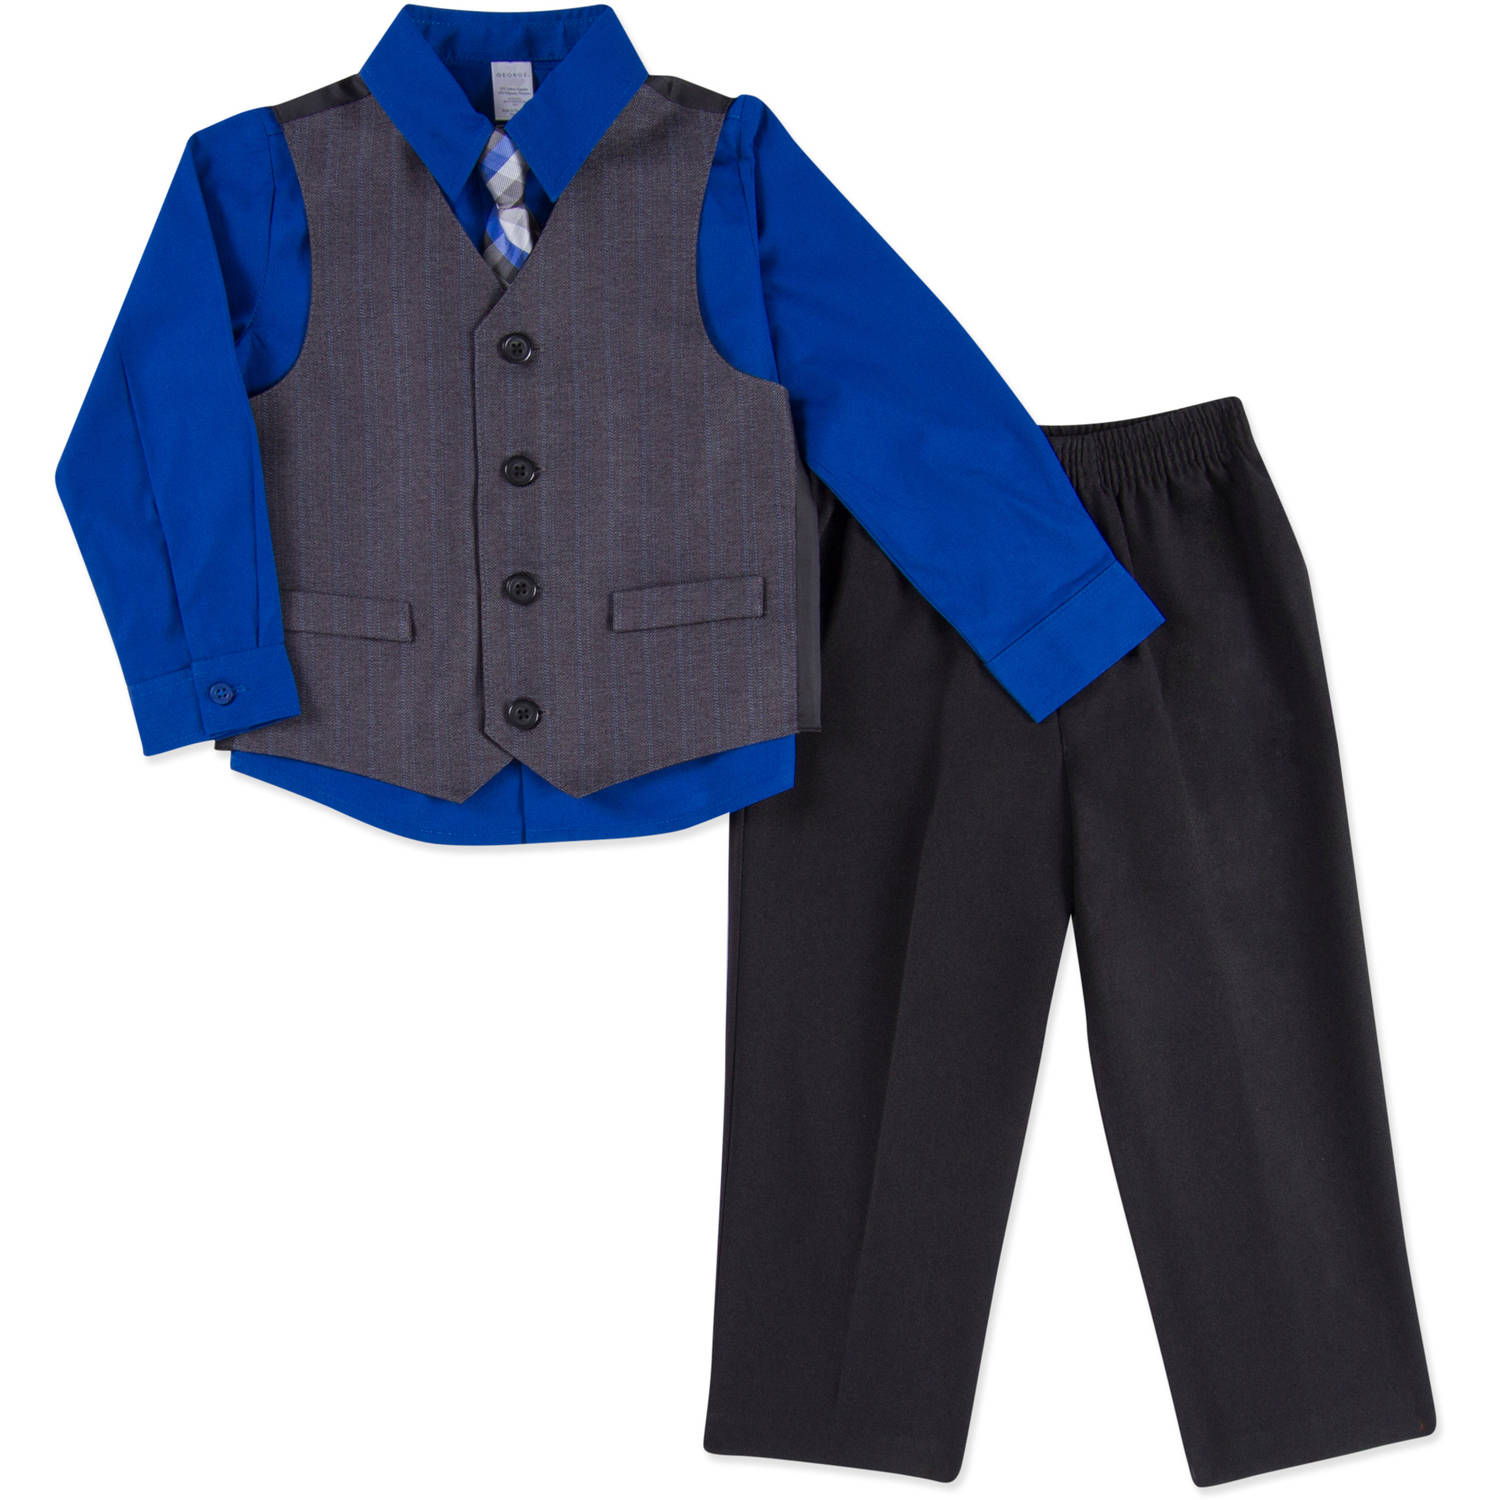 George Baby Toddler Boy Boy Special Occasion Dressy Vest, 4-Piece Outfit Set